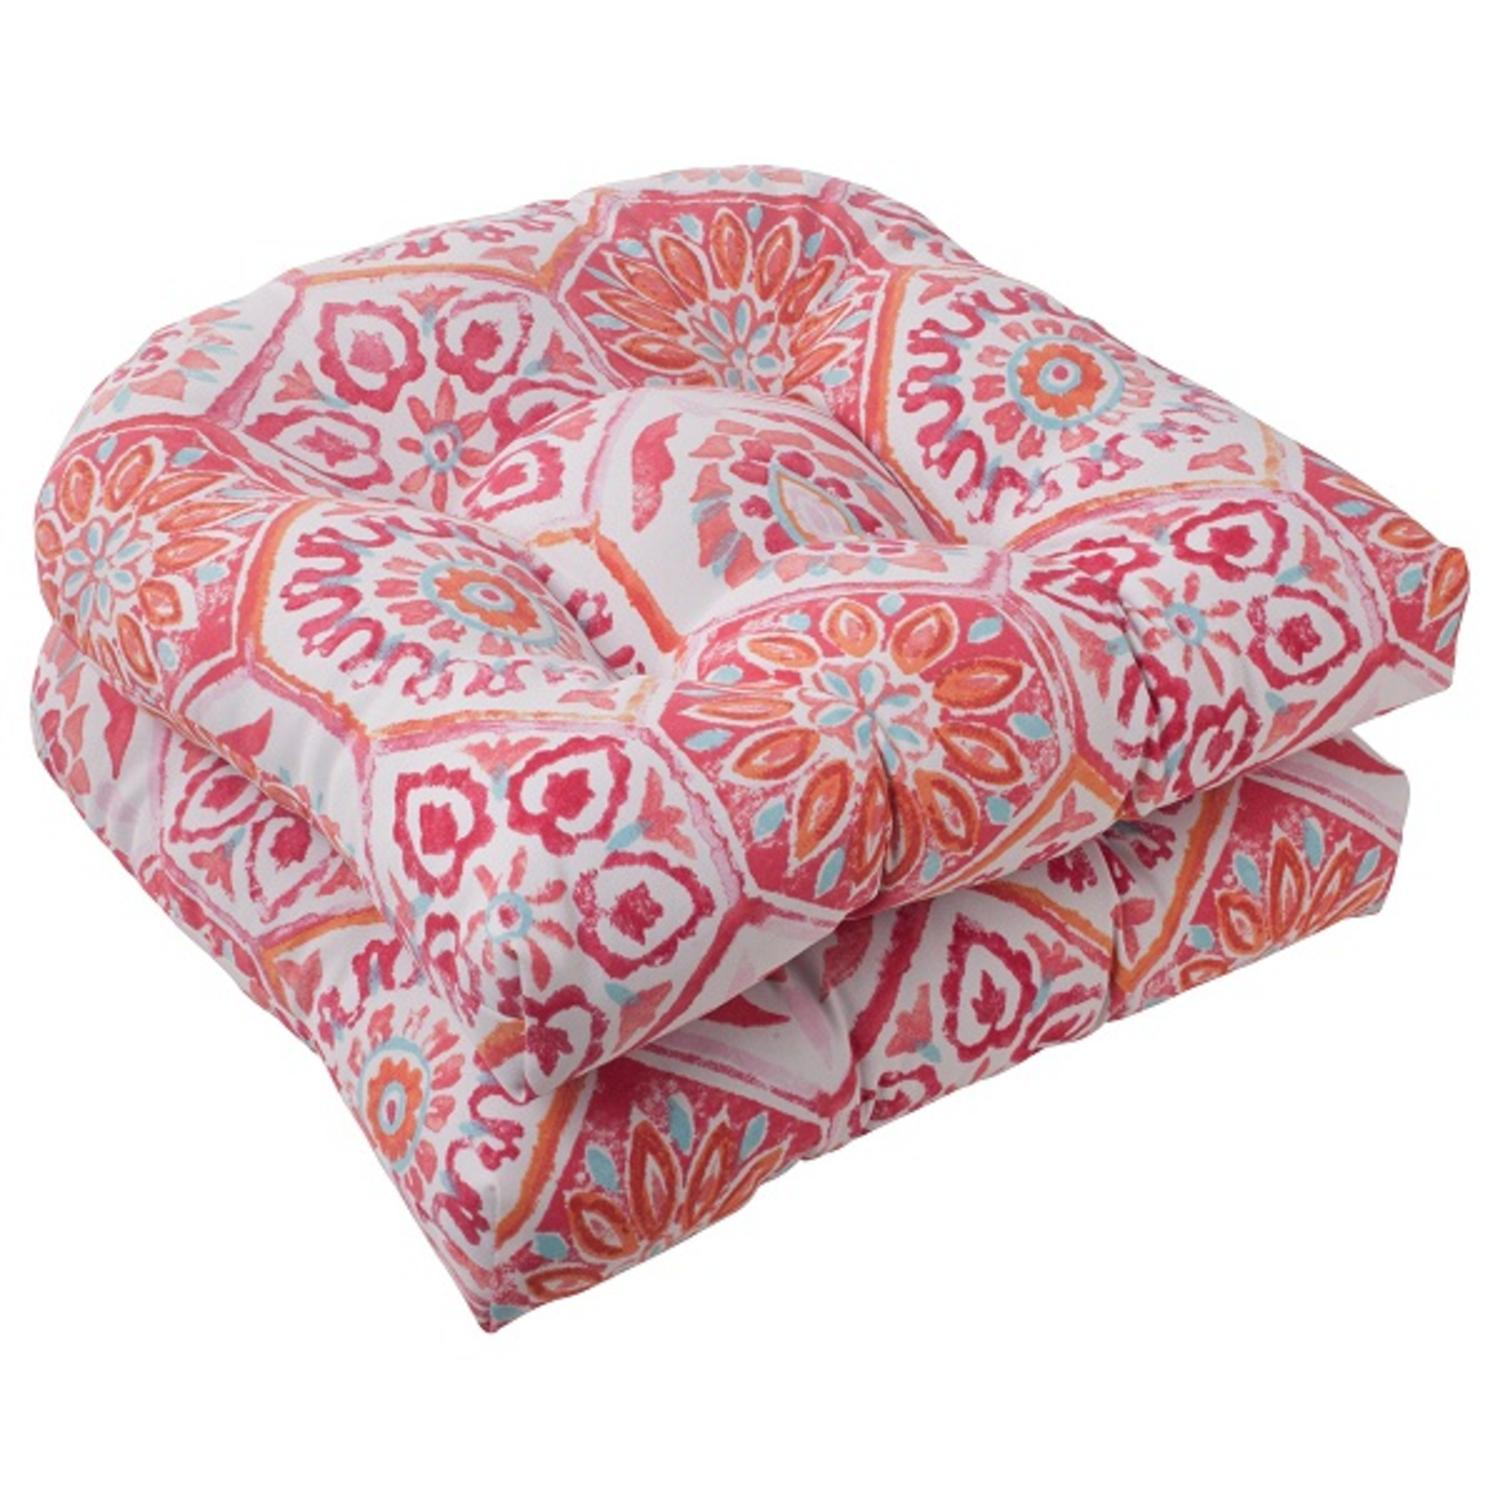 Set of 2 Pink Psychedelic Kaleidoscopic Outdoor Patio Seat Cushions 19""